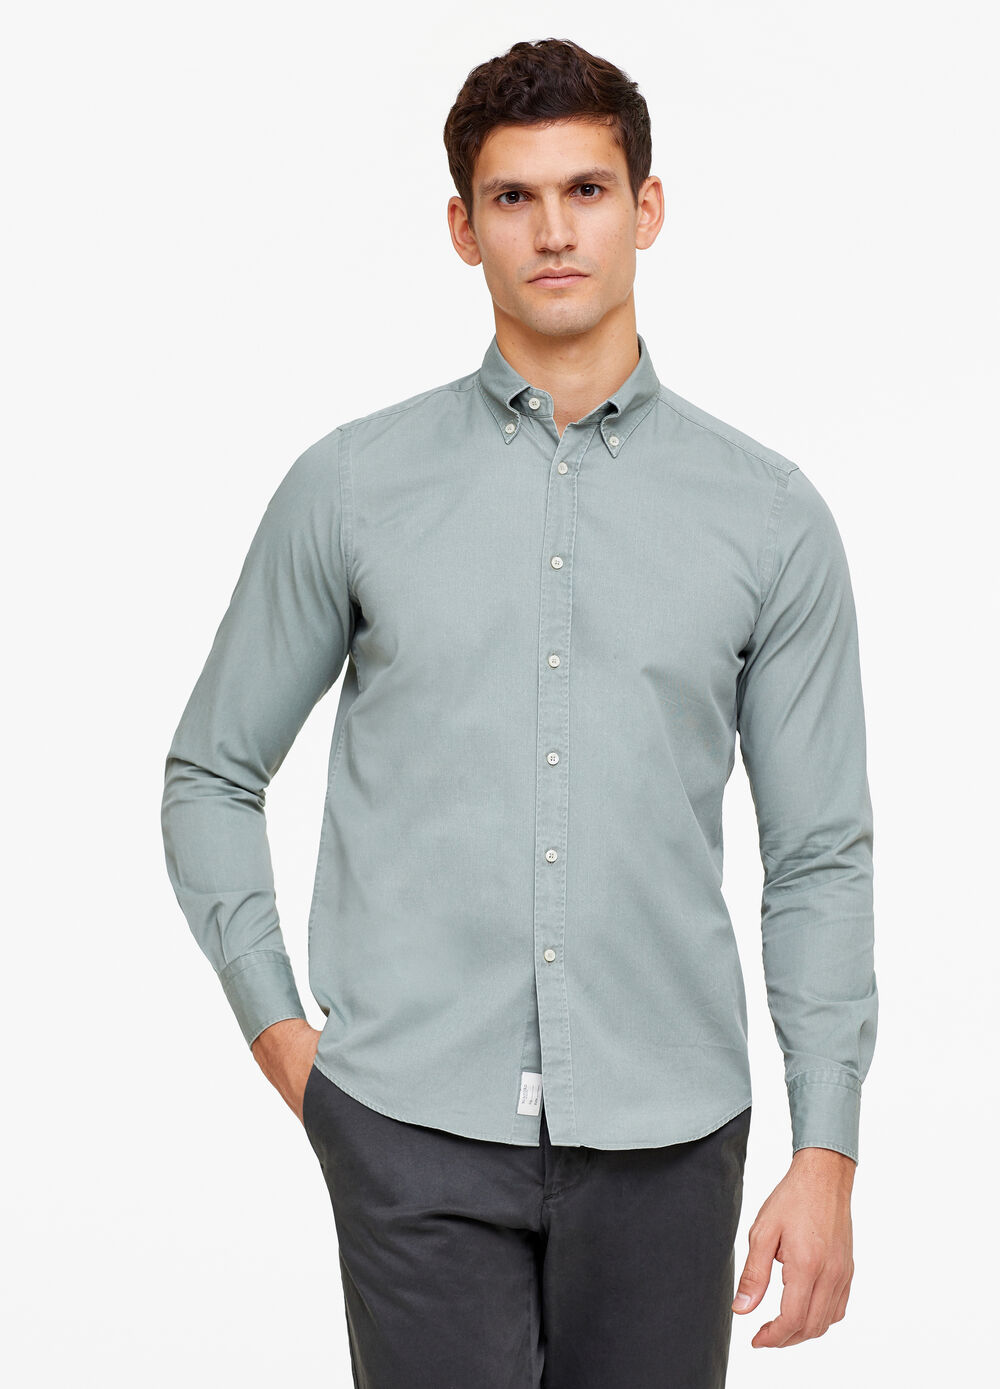 Rumford 100% cotton shirt